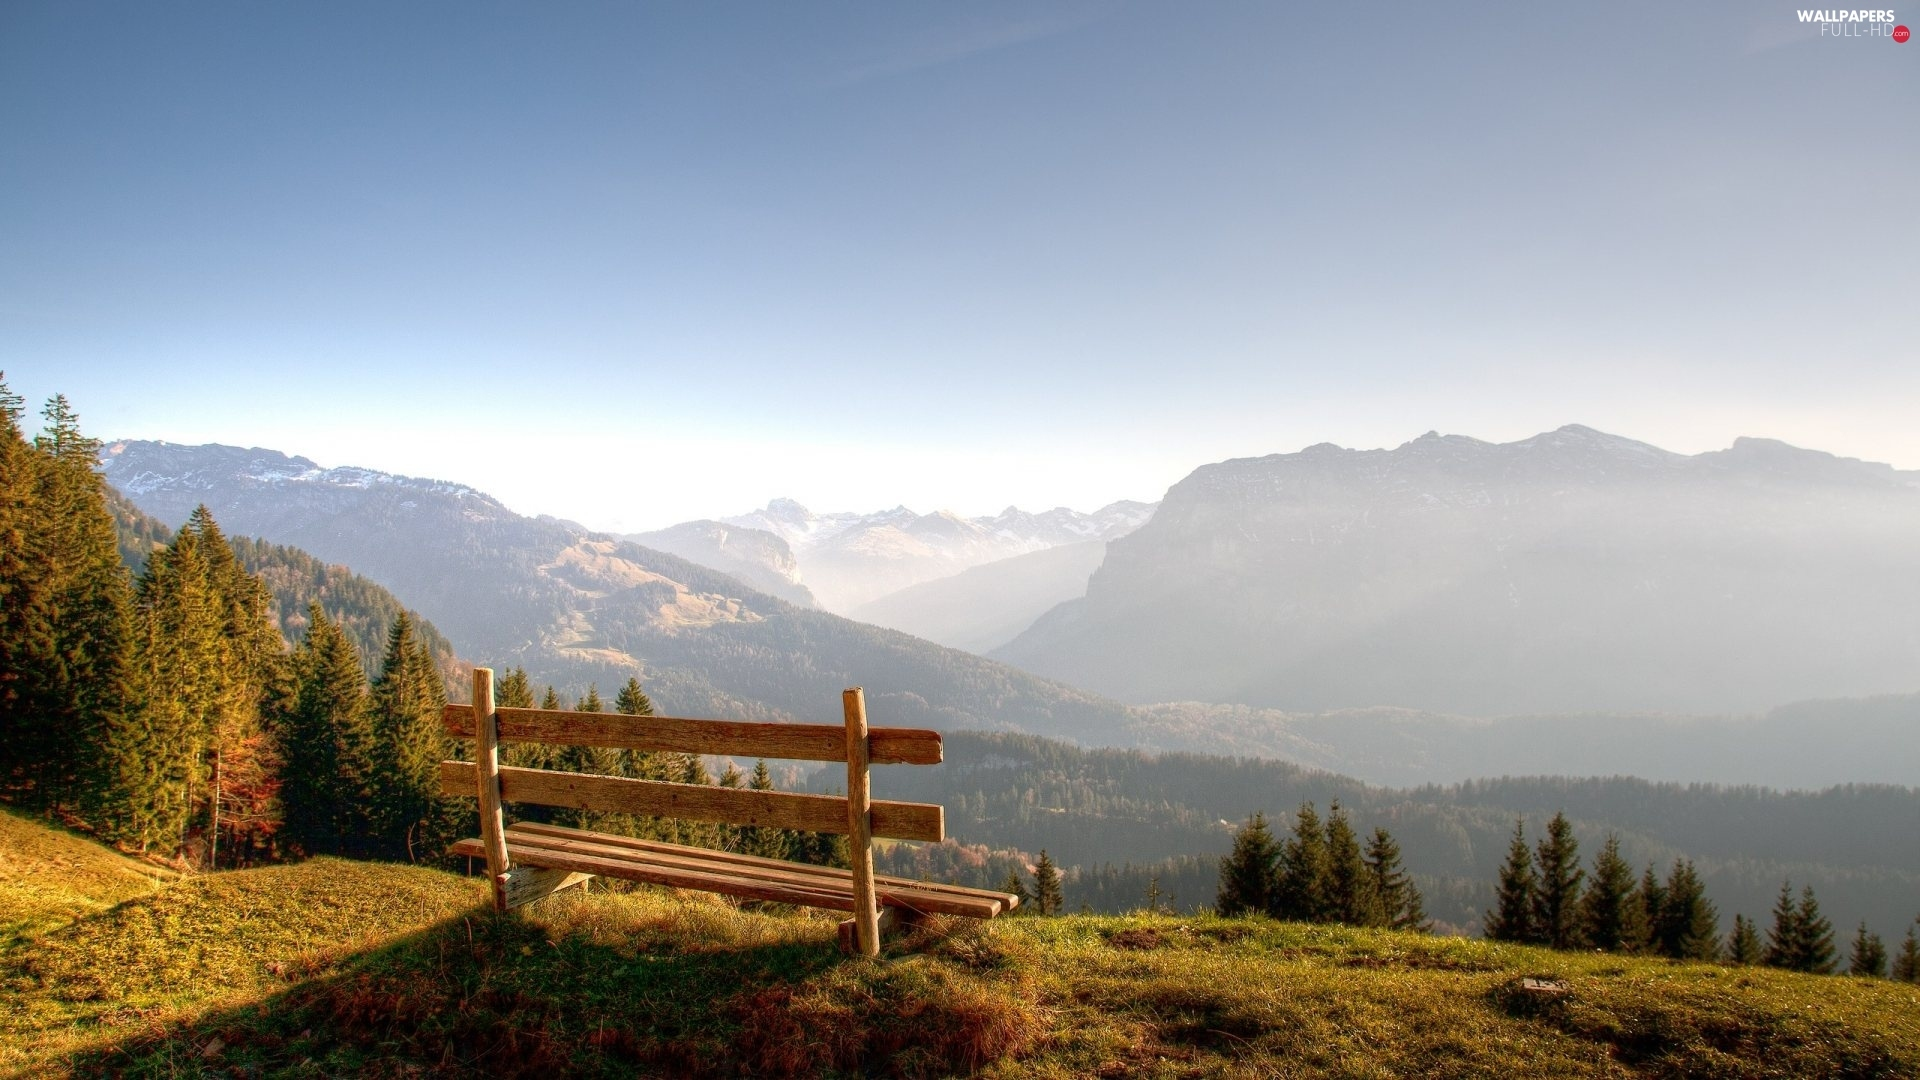 Mountains, forest, Bench